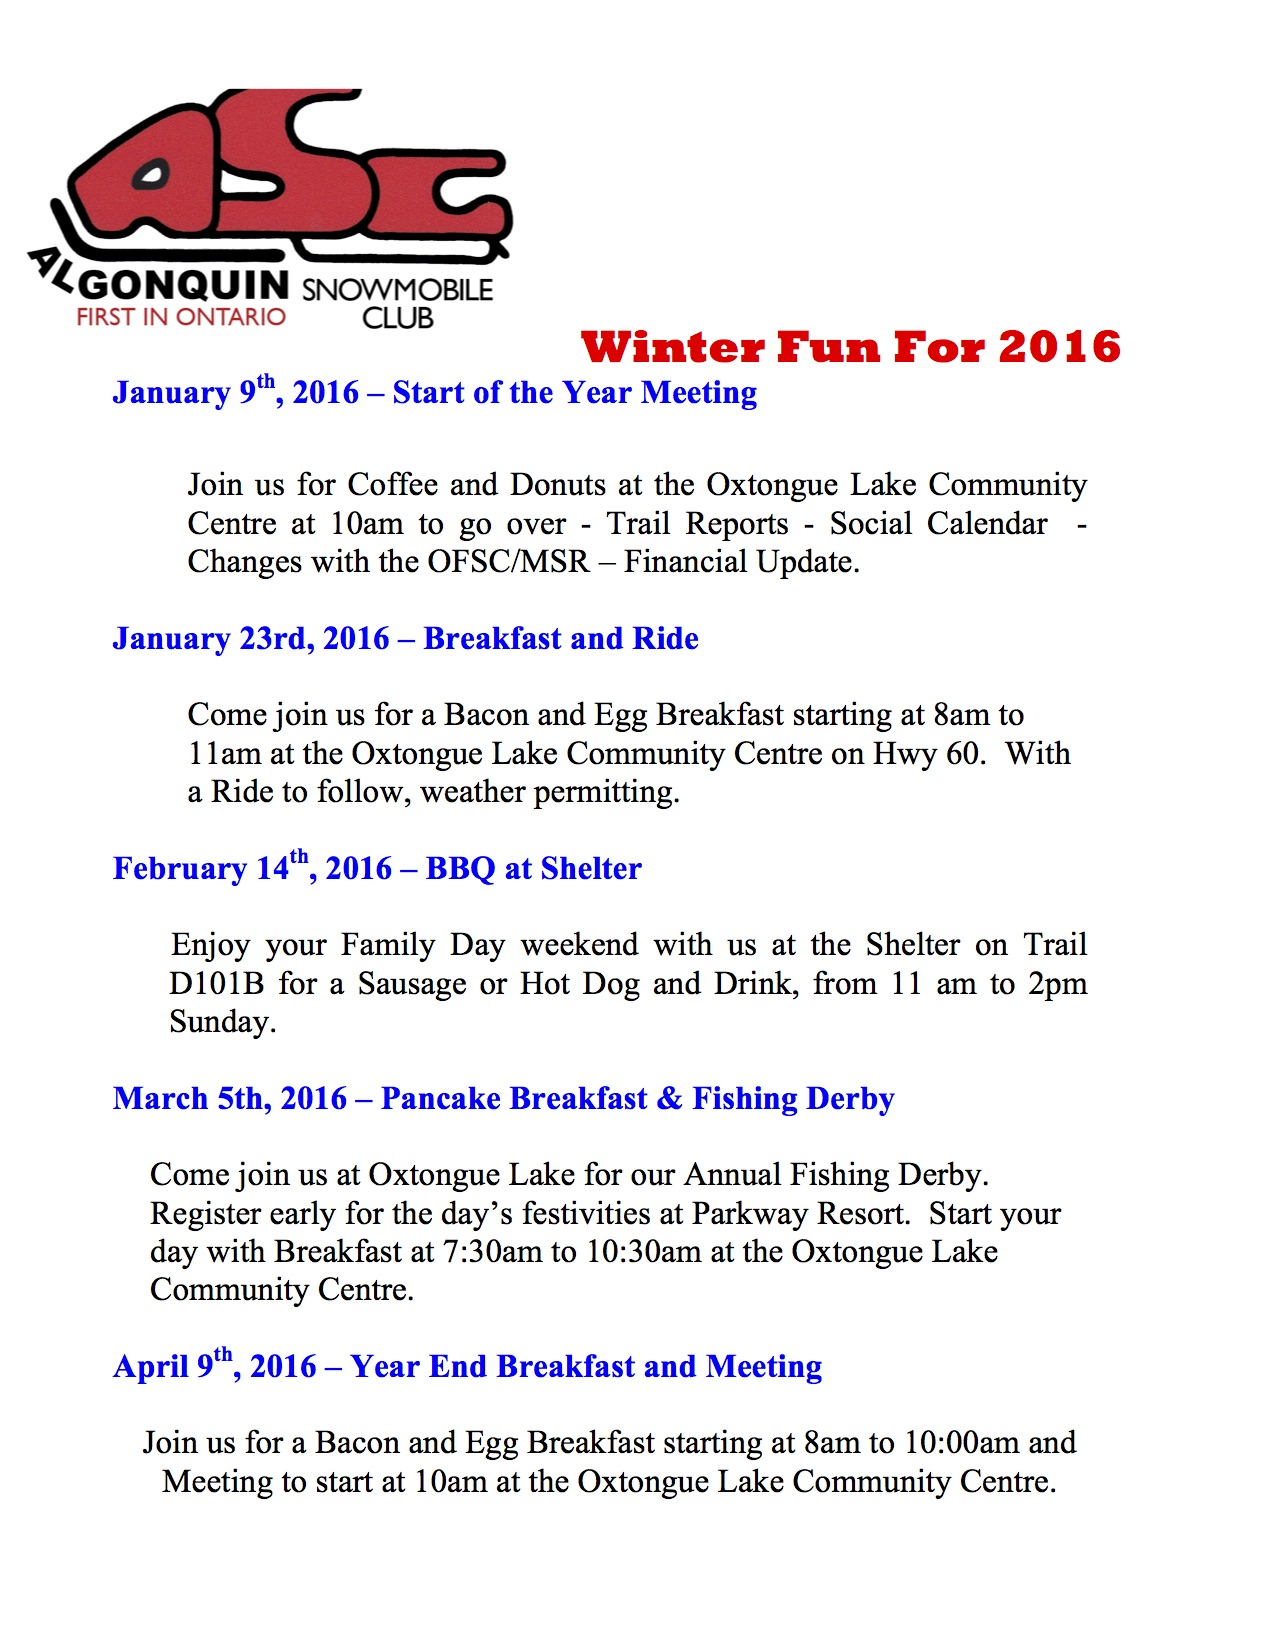 Algonquin Snowmobile Club Calendar